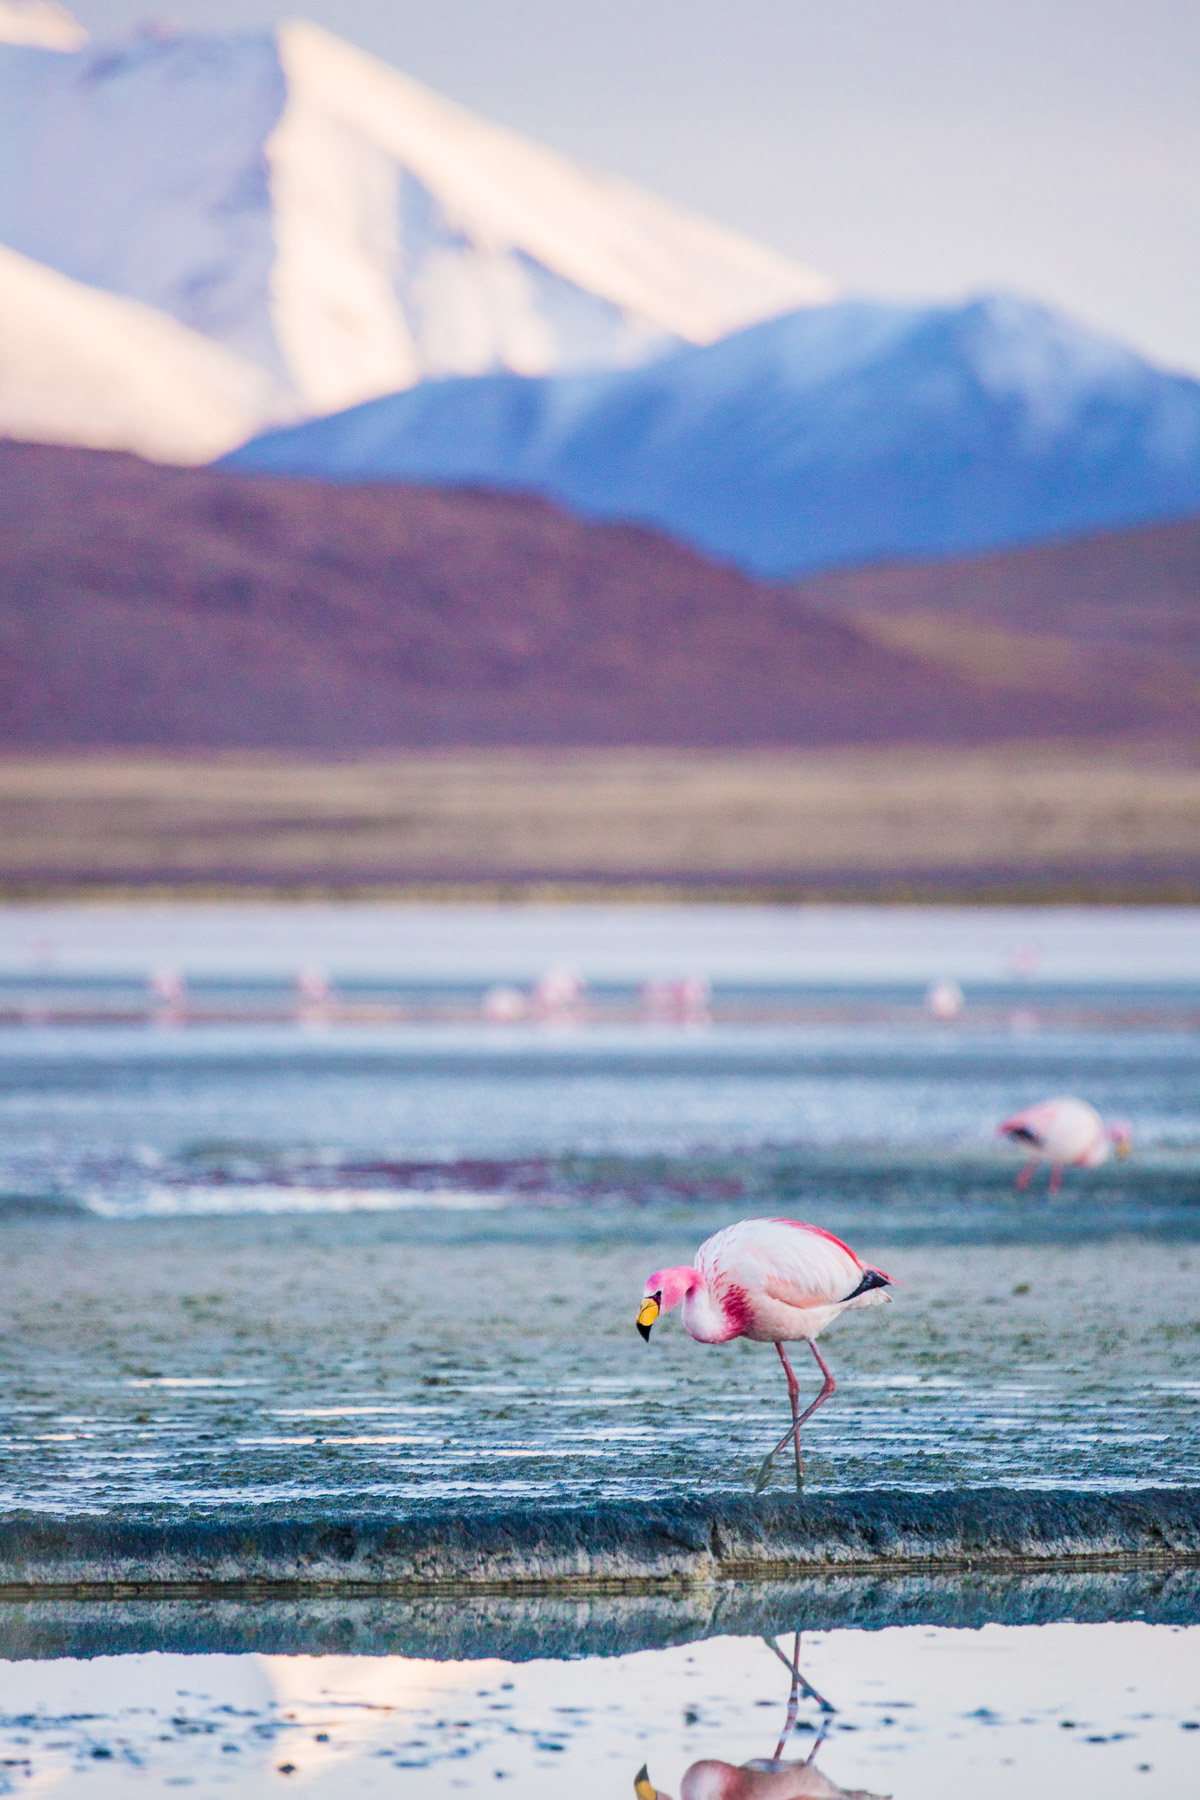 flamingo-laguna-hedionda-bolivia-siloli-desert-eduardo-avaroa-national-park-travel-photographer-wildlife.jpg